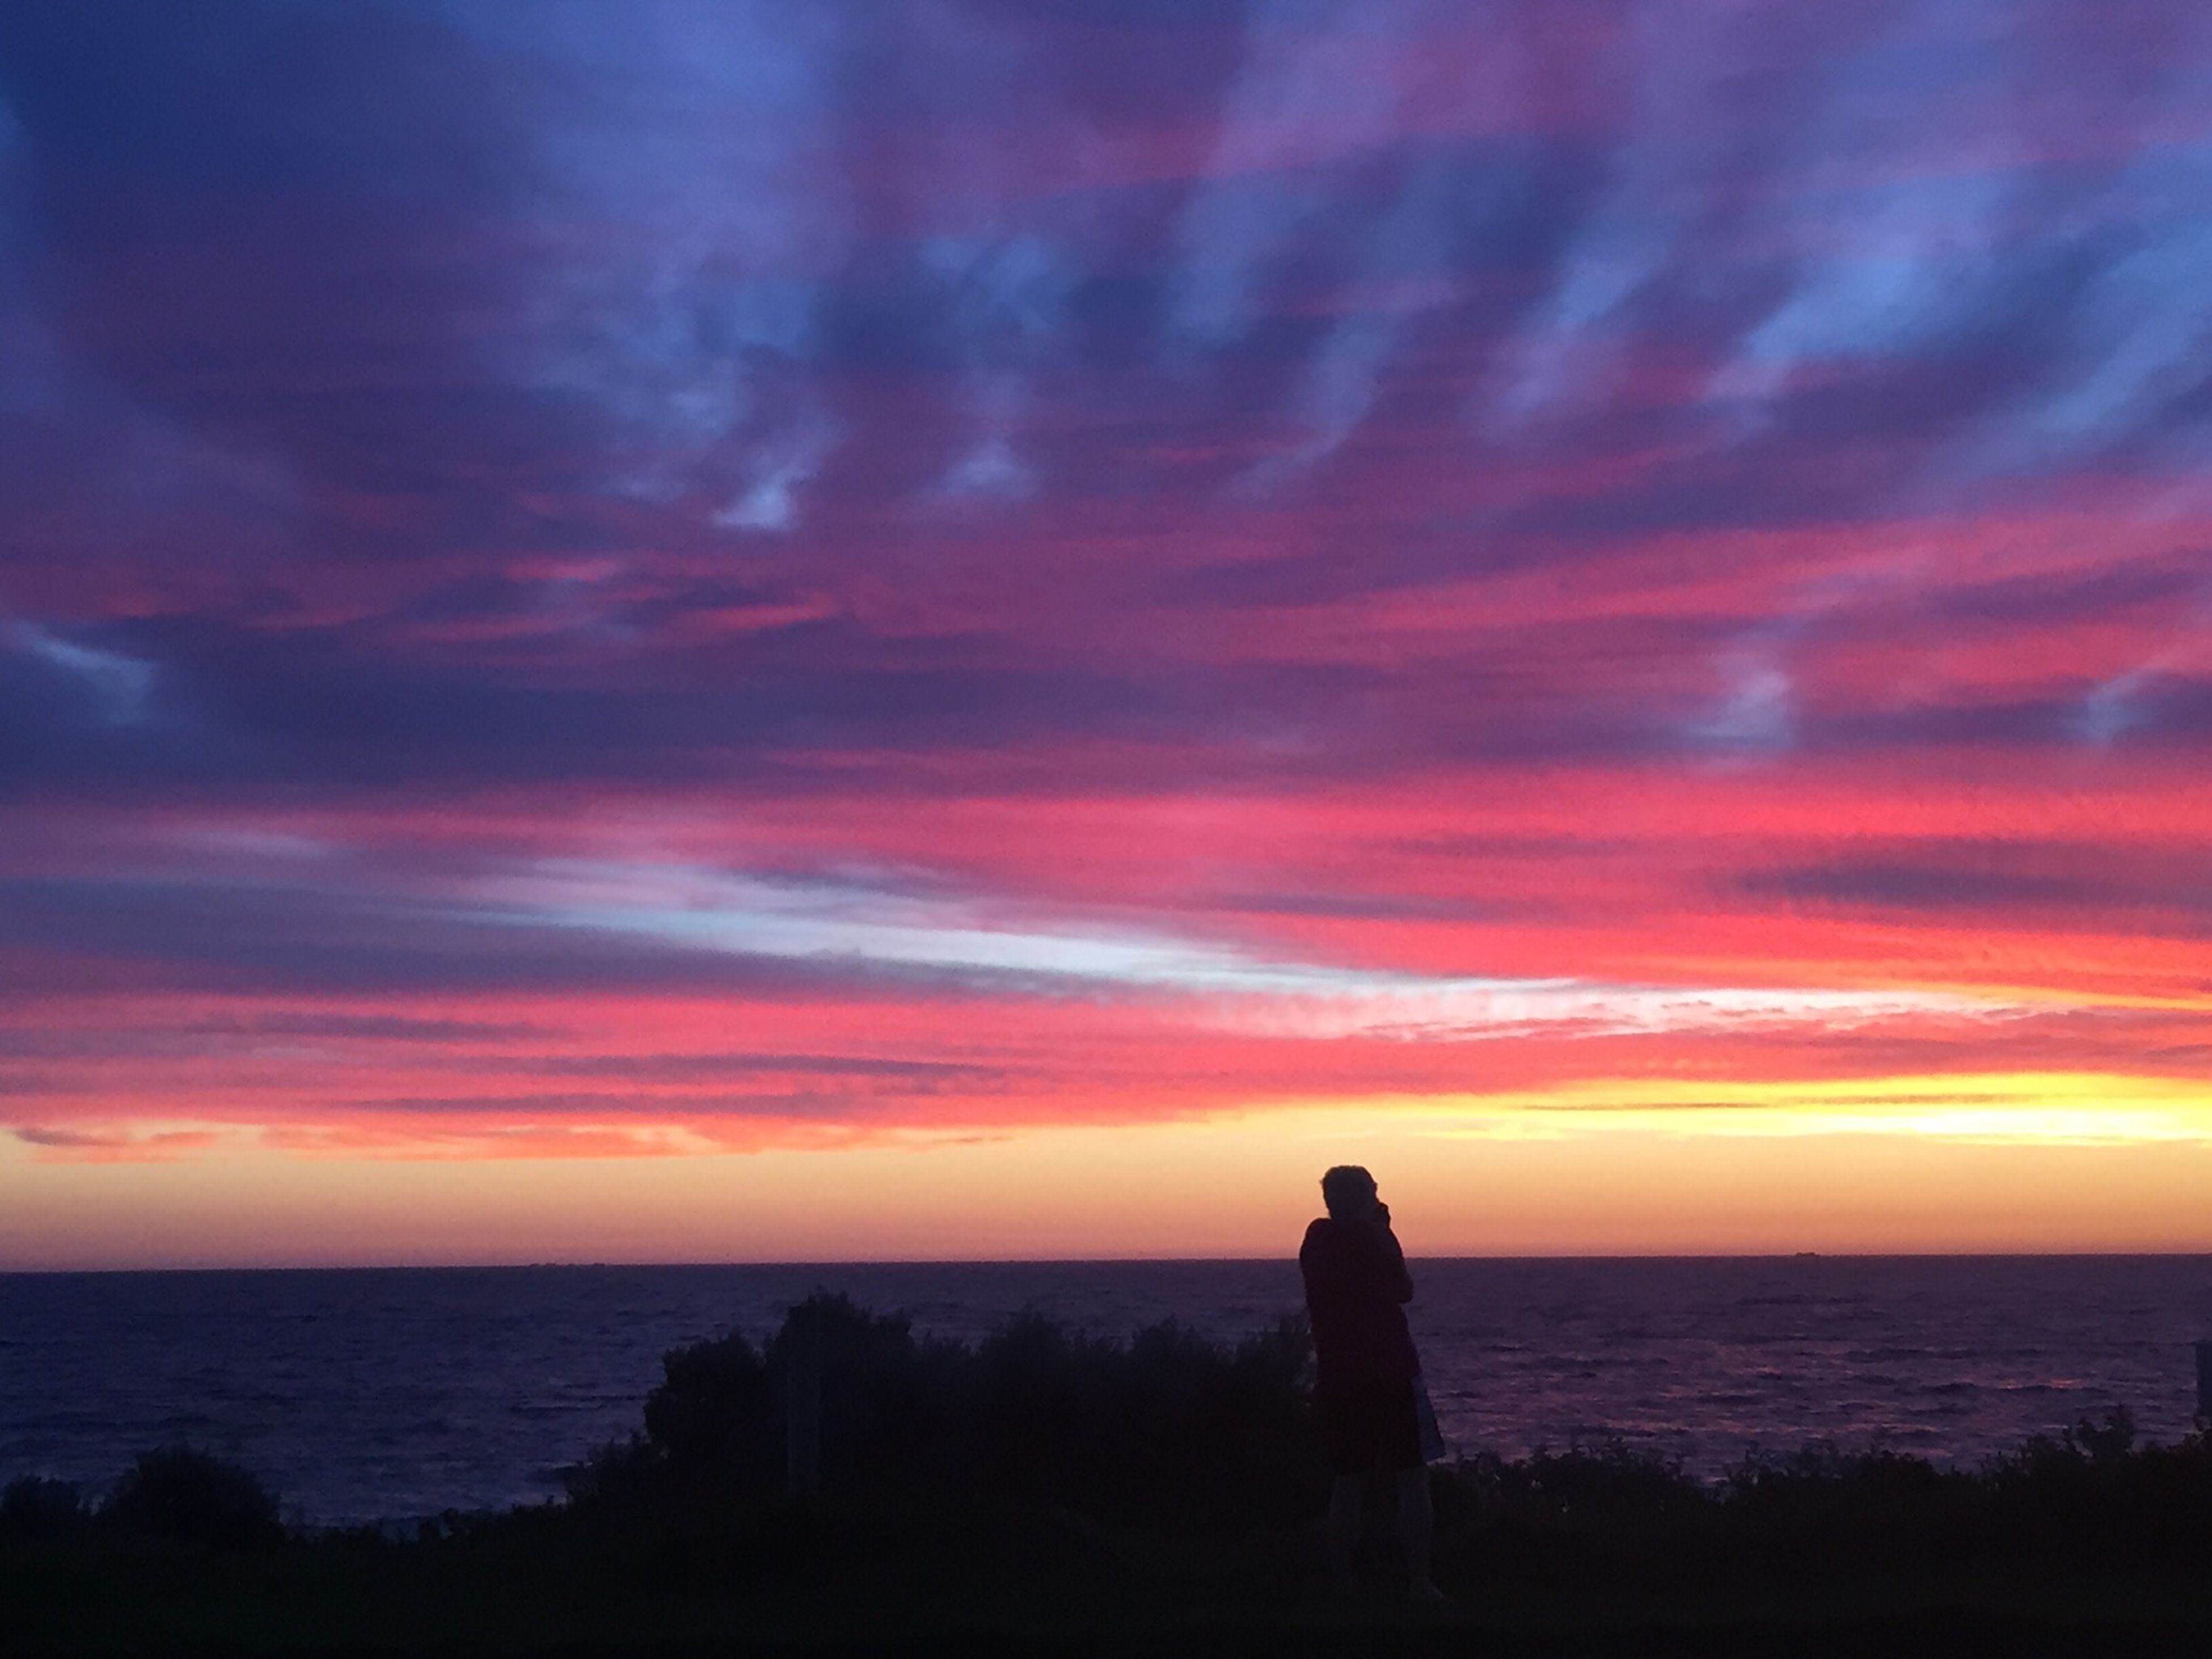 sea, sunset, horizon over water, sky, scenics, water, beauty in nature, tranquil scene, silhouette, tranquility, orange color, idyllic, nature, beach, cloud - sky, shore, dramatic sky, standing, cloud, rock - object